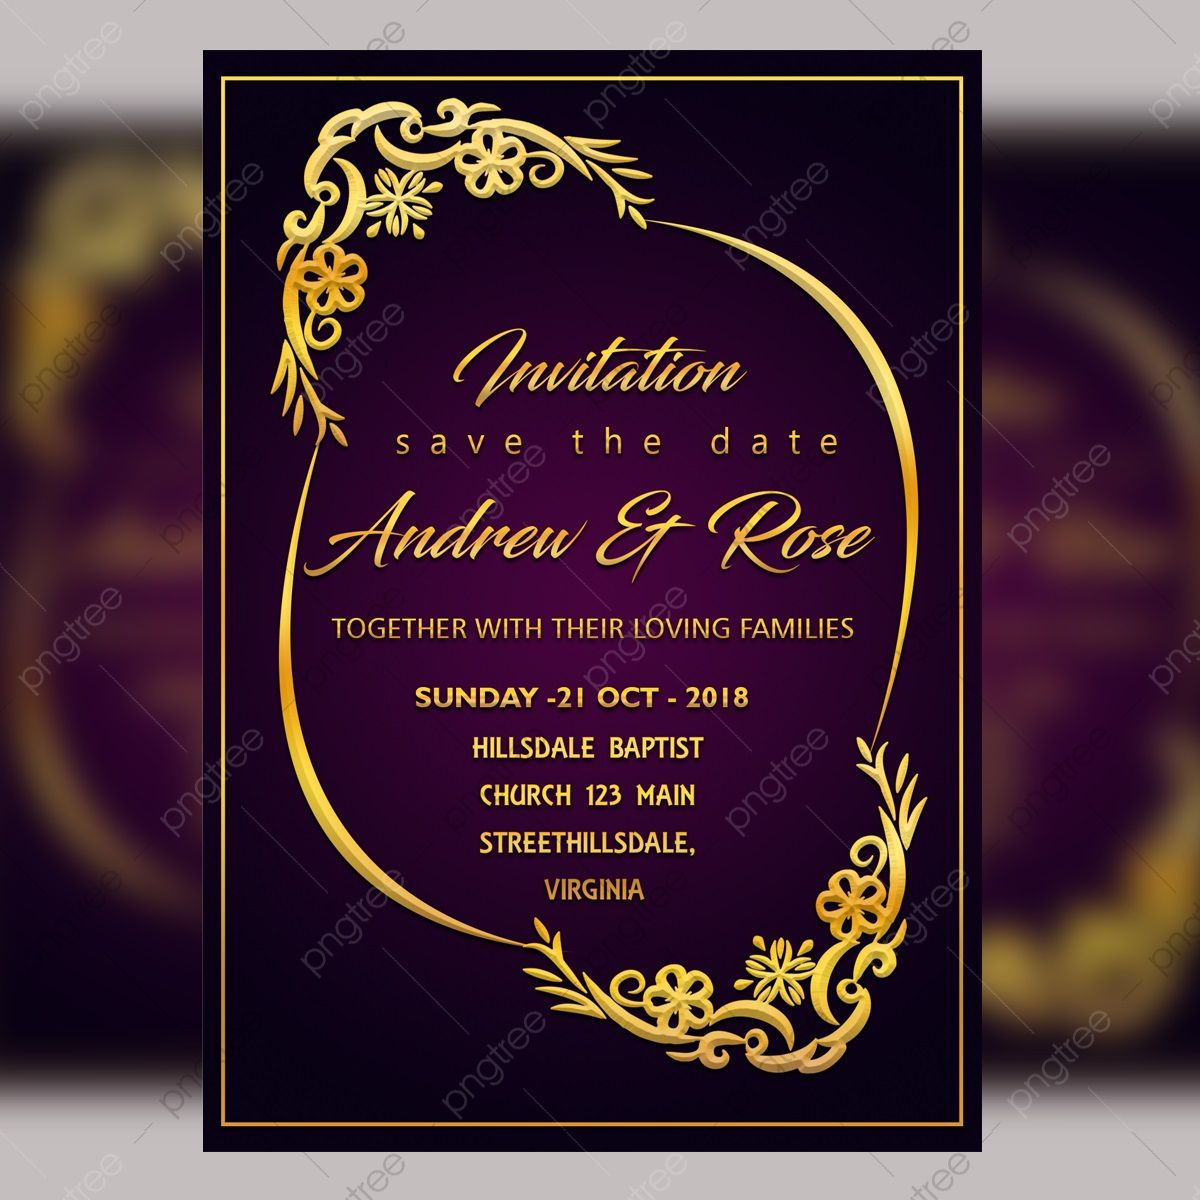 009 Unbelievable Free Download Invitation Card Template Psd Sample  Indian WeddingFull